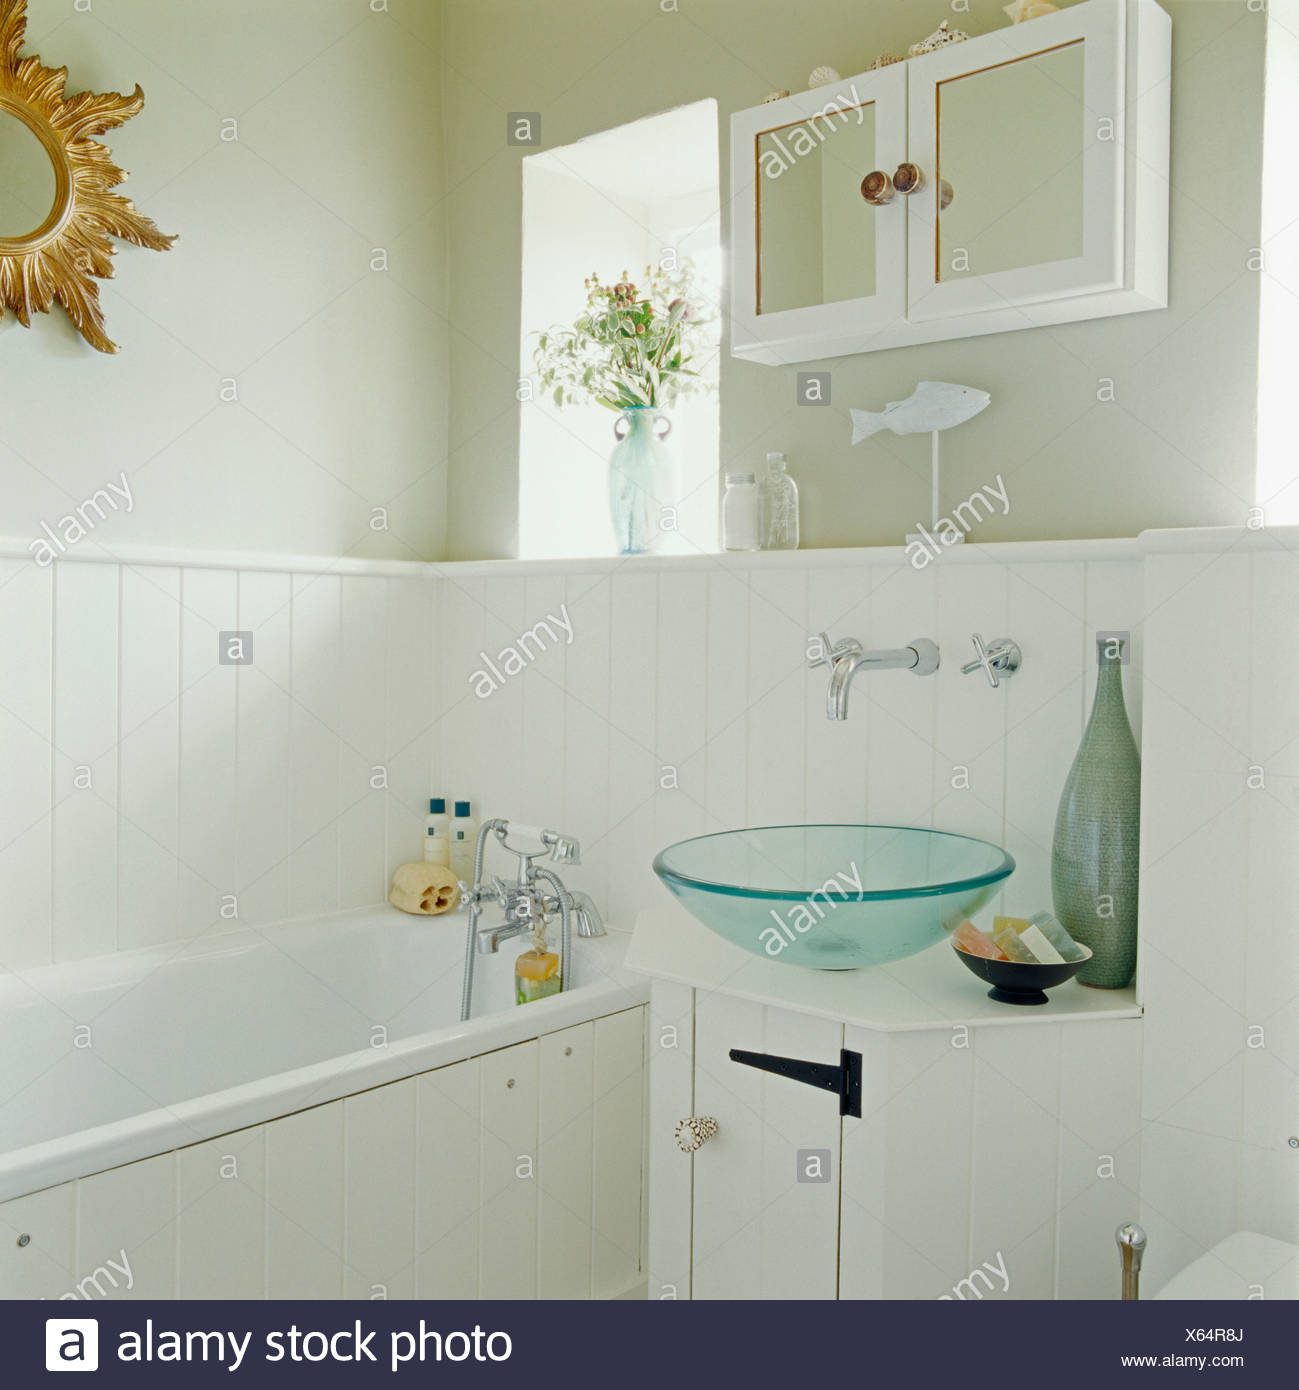 Modern glass basin bowl on small cupboard in country bathroom with ...